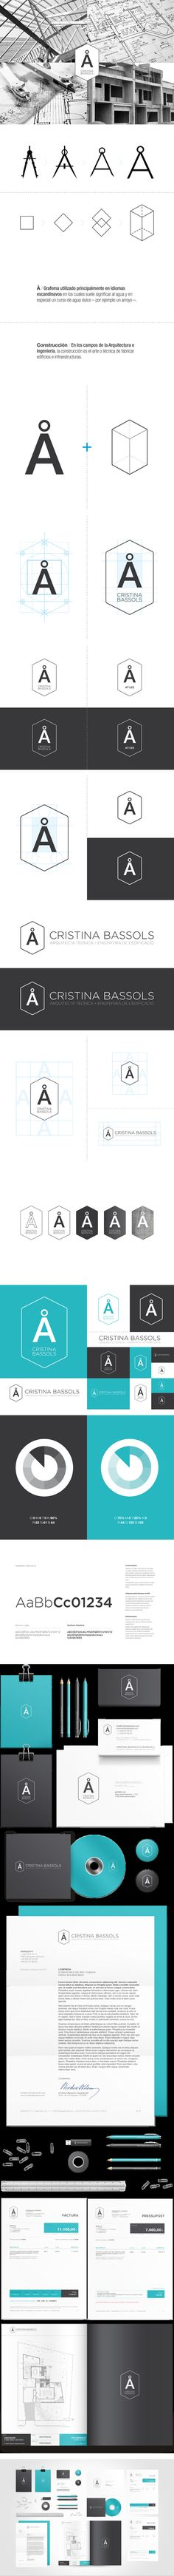 Cristina Bassols visual Identity  | #stationary #corporate #design #corporatedesign #identity #branding #marketing < repinned by www.BlickeDeeler.de | Take a look at www.LogoGestaltung-Hamburg.de